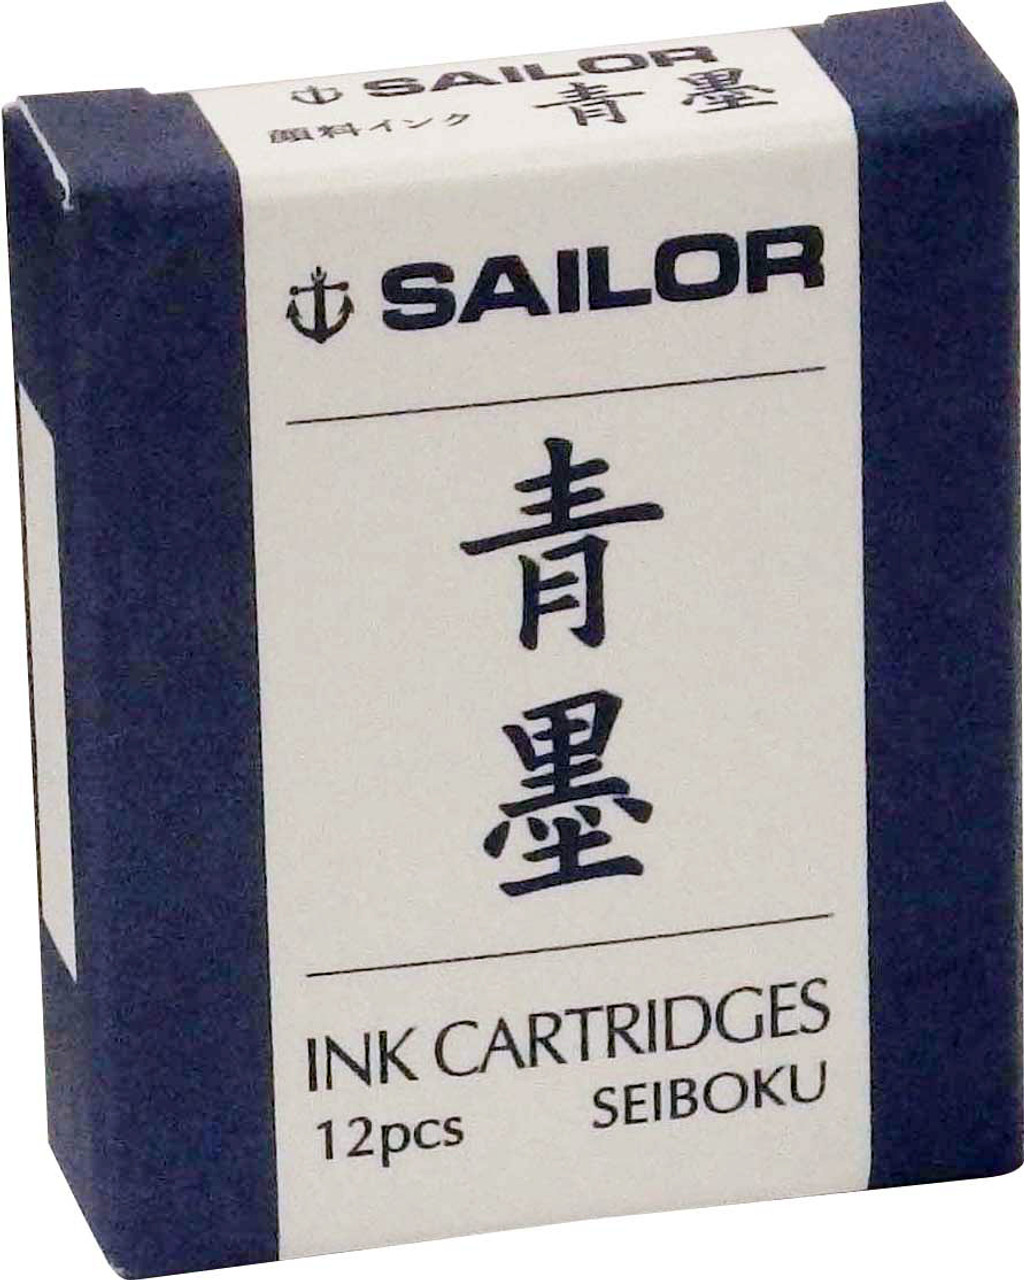 Sailor Fountain Pen Pack Of 12 Seiboku Blue Black Pigment Ink Cartridges